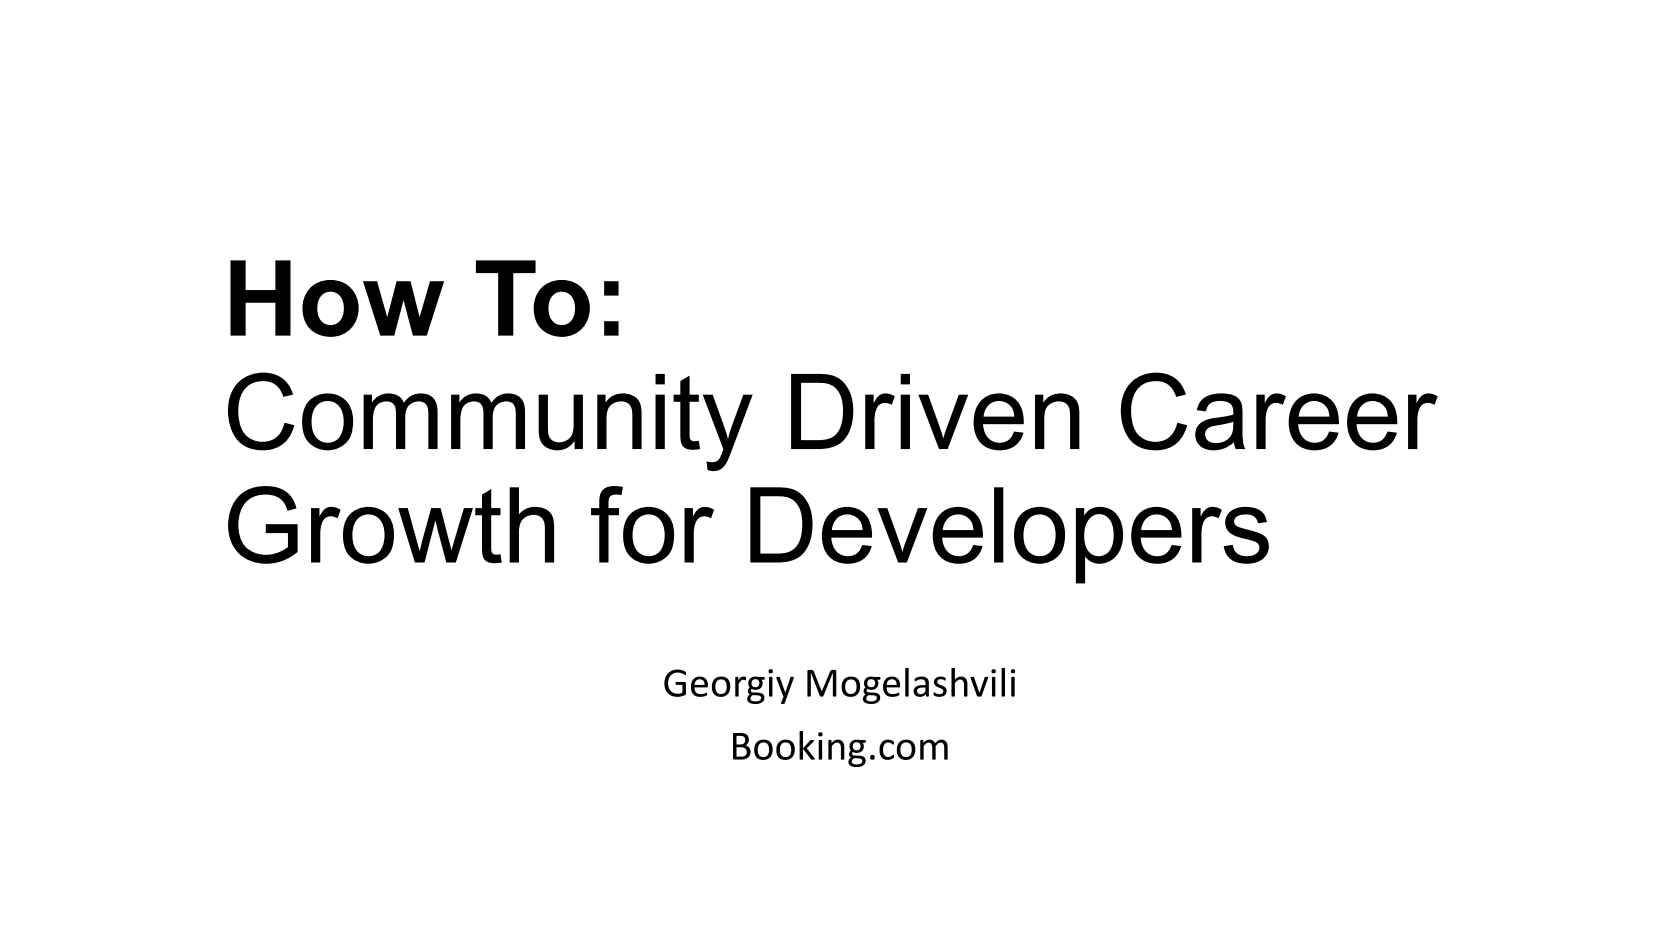 How To Developers Community Driven Career Growth